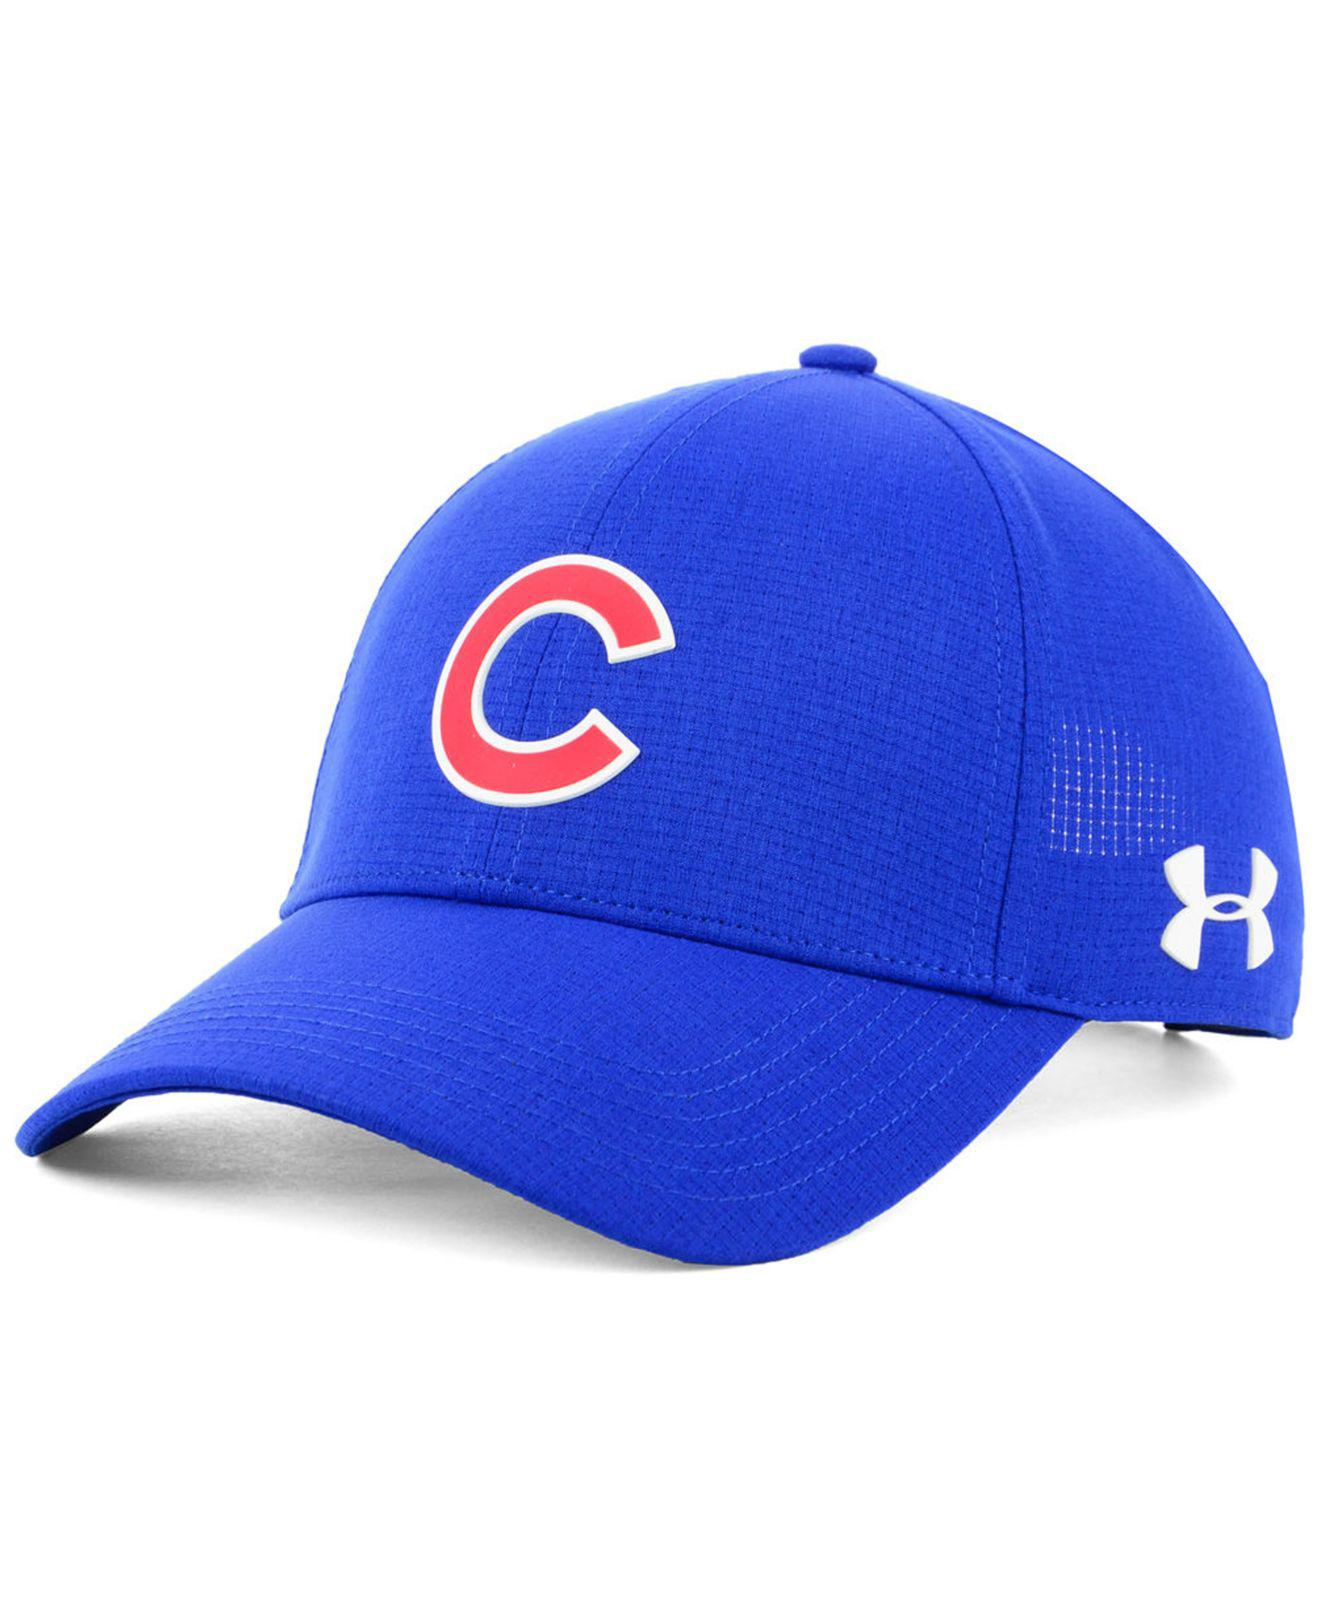 2e0a01ed9 Lyst - Under Armour Chicago Cubs Driver Cap in Blue